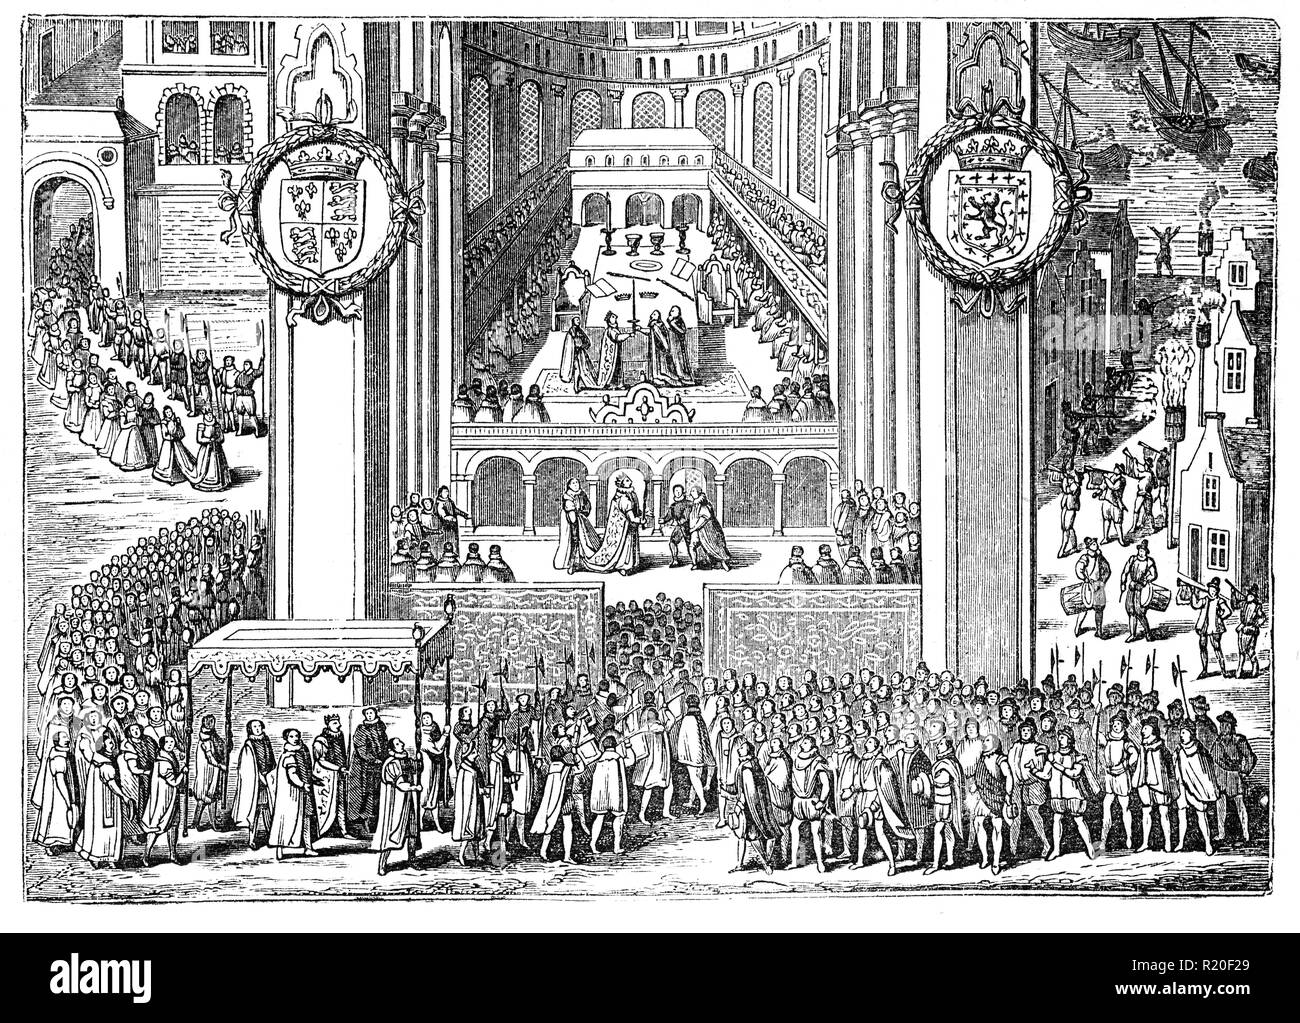 The English coronation of King James I on the on 25 July, 1567 in Westminser Abbey, London. He was also  King of Scotland as James VI from 24 July 1567 and King of England and Ireland as James. Although the kingdoms of Scotland and England were individual sovereign states, with their own parliaments, judiciaries, and laws, though both were ruled by James. He succeeded the last Tudor monarch, Elizabeth I in 1603 and reigned in all three kingdoms for 22 years, a period known after him as the Jacobean era, until his death in 1625 at the age of 58. - Stock Image